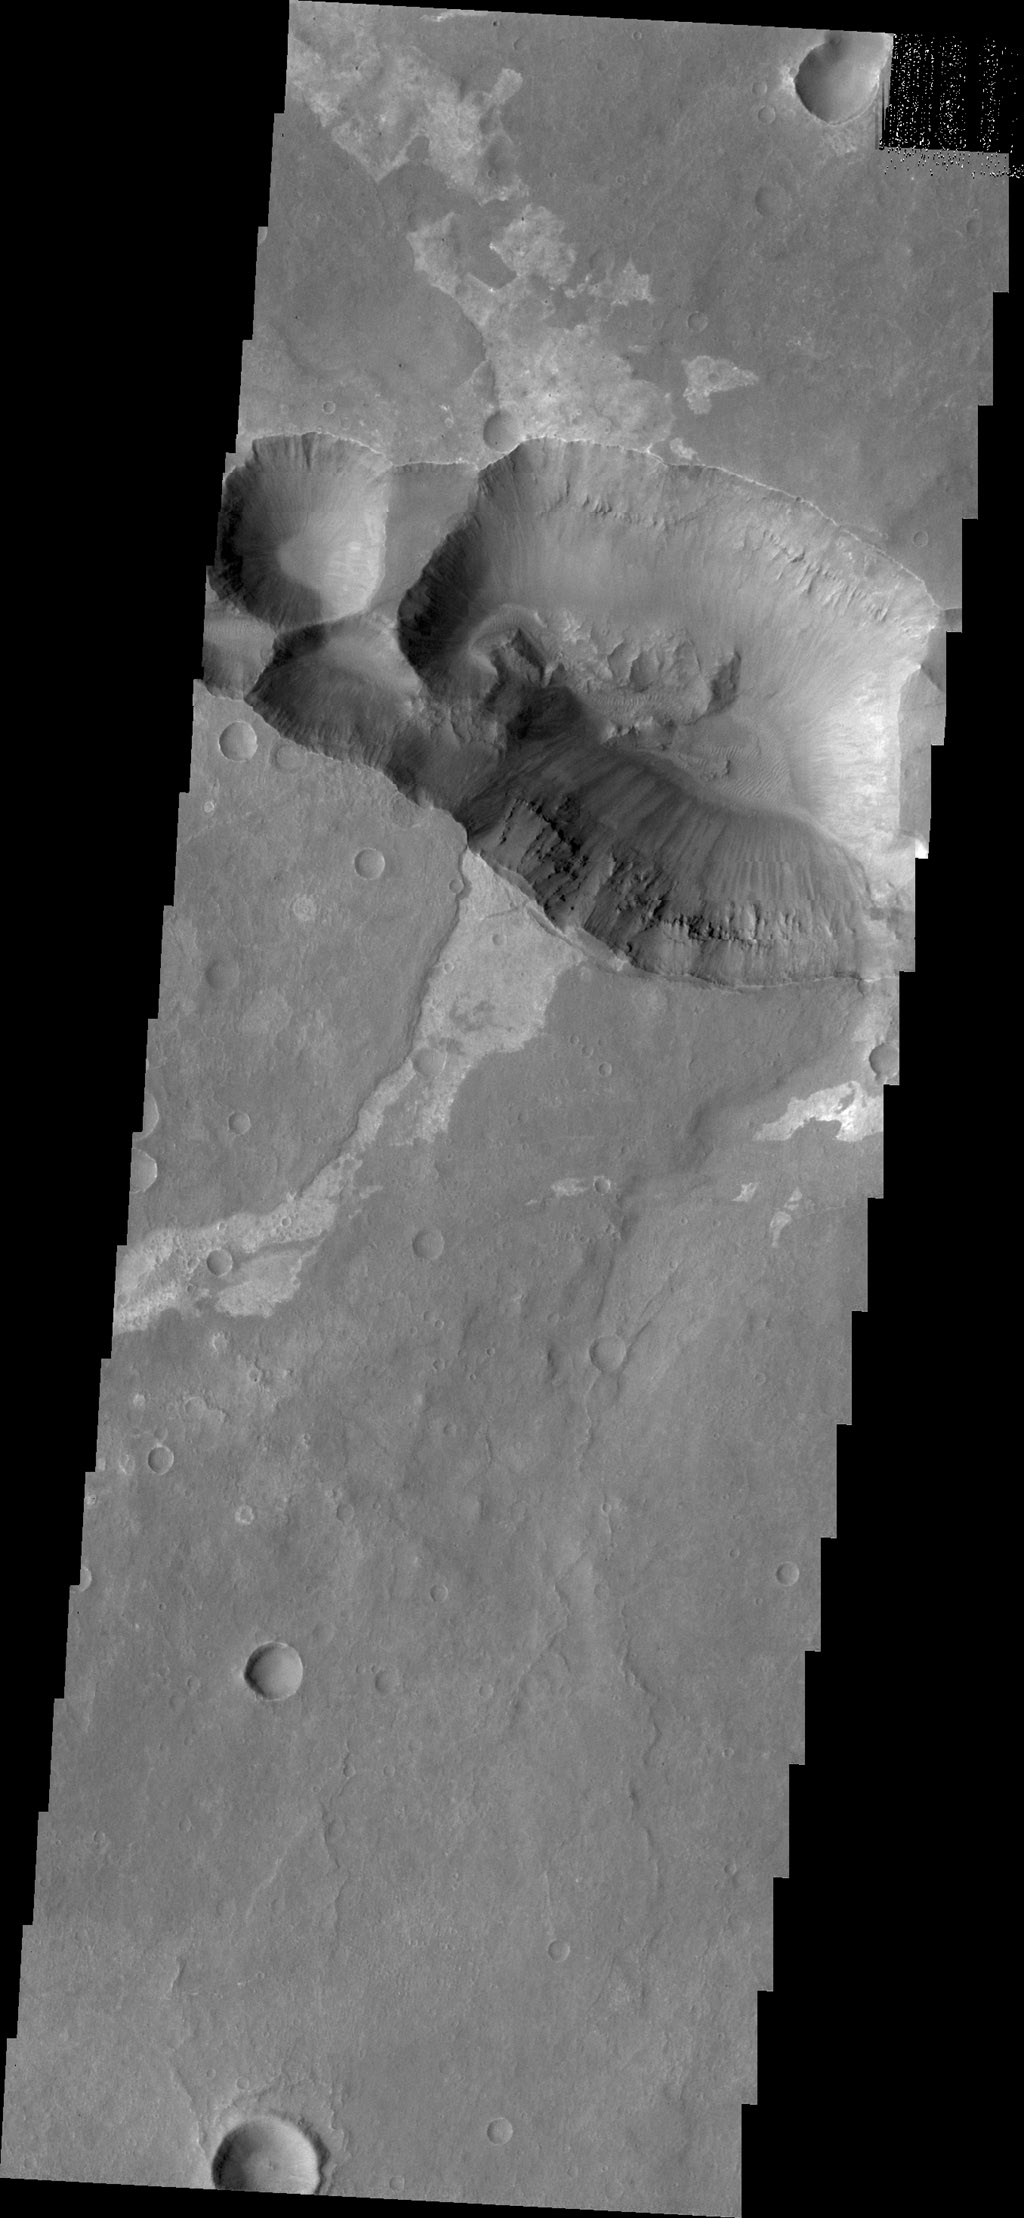 Today's image from NASA's 2001 Mars Odyssey spacecraft shows the shallower extension of Coprates Chamsa called Coprates Catena.